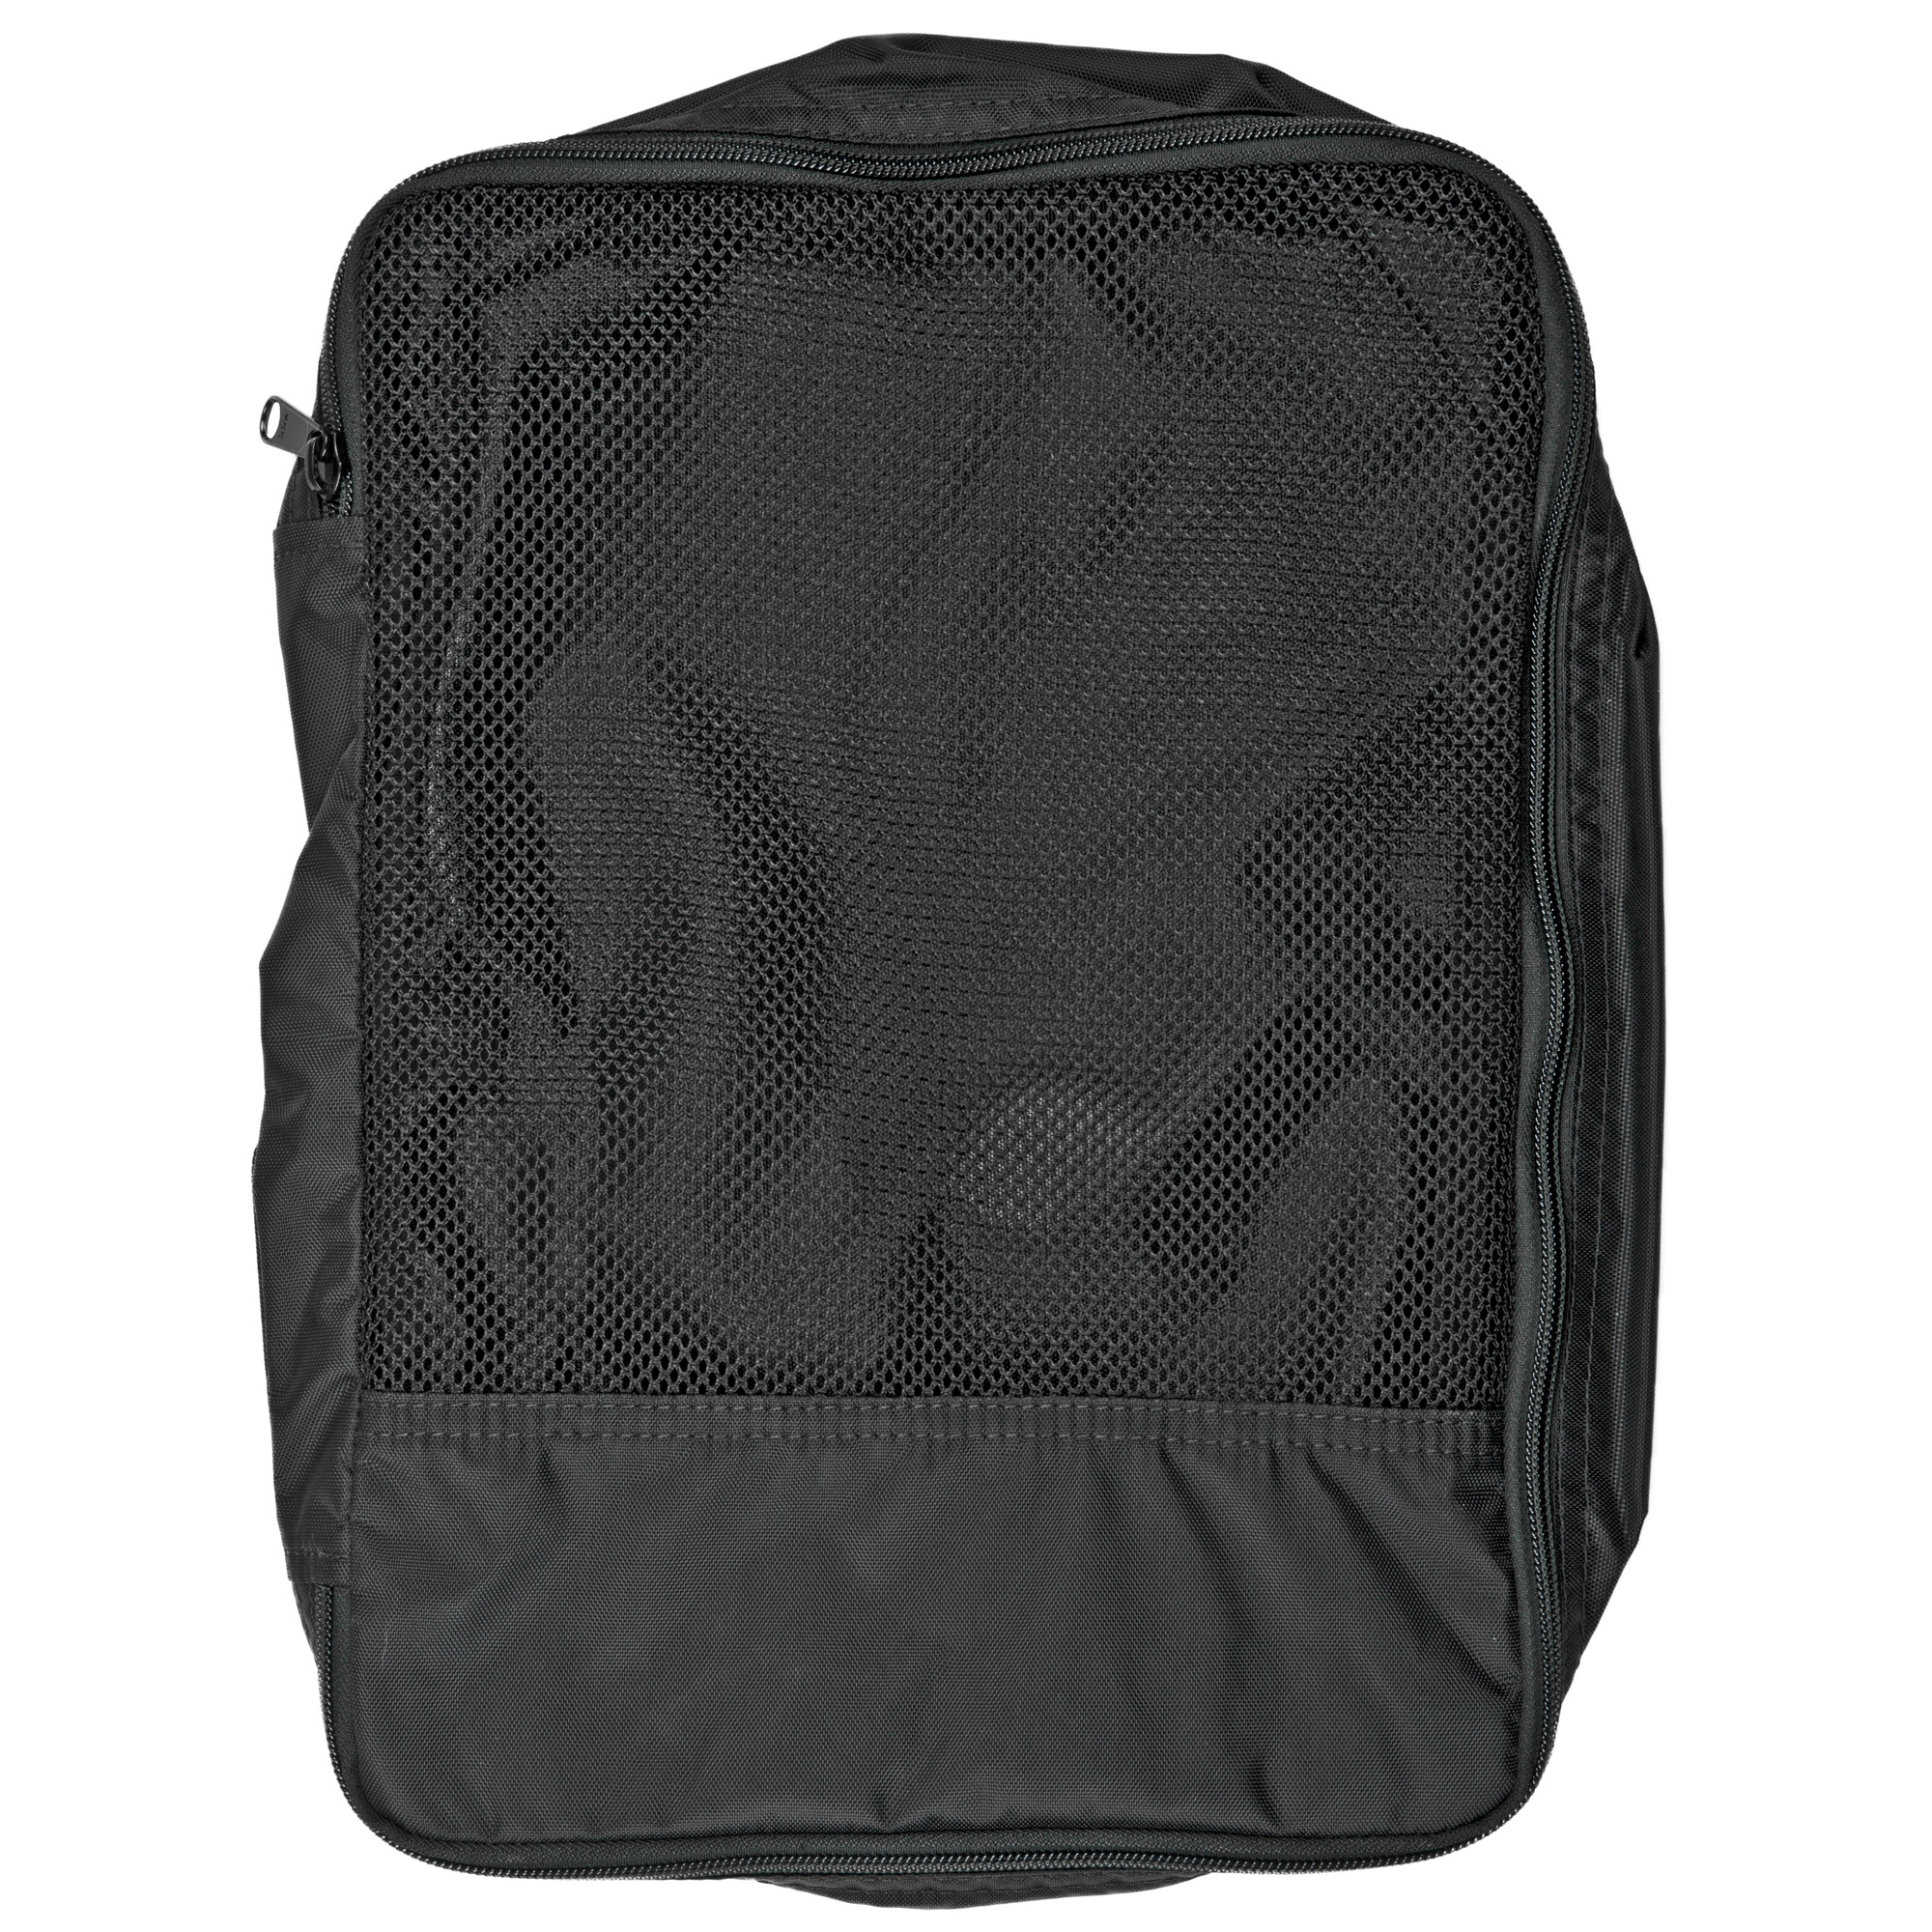 The Garment bag was designed to easily organize clothing and similar soft goods. It can fit comfortably five garments or a fully loaded D3CRX. Fits in the Flatpack Plus and Incog Rifle bags.